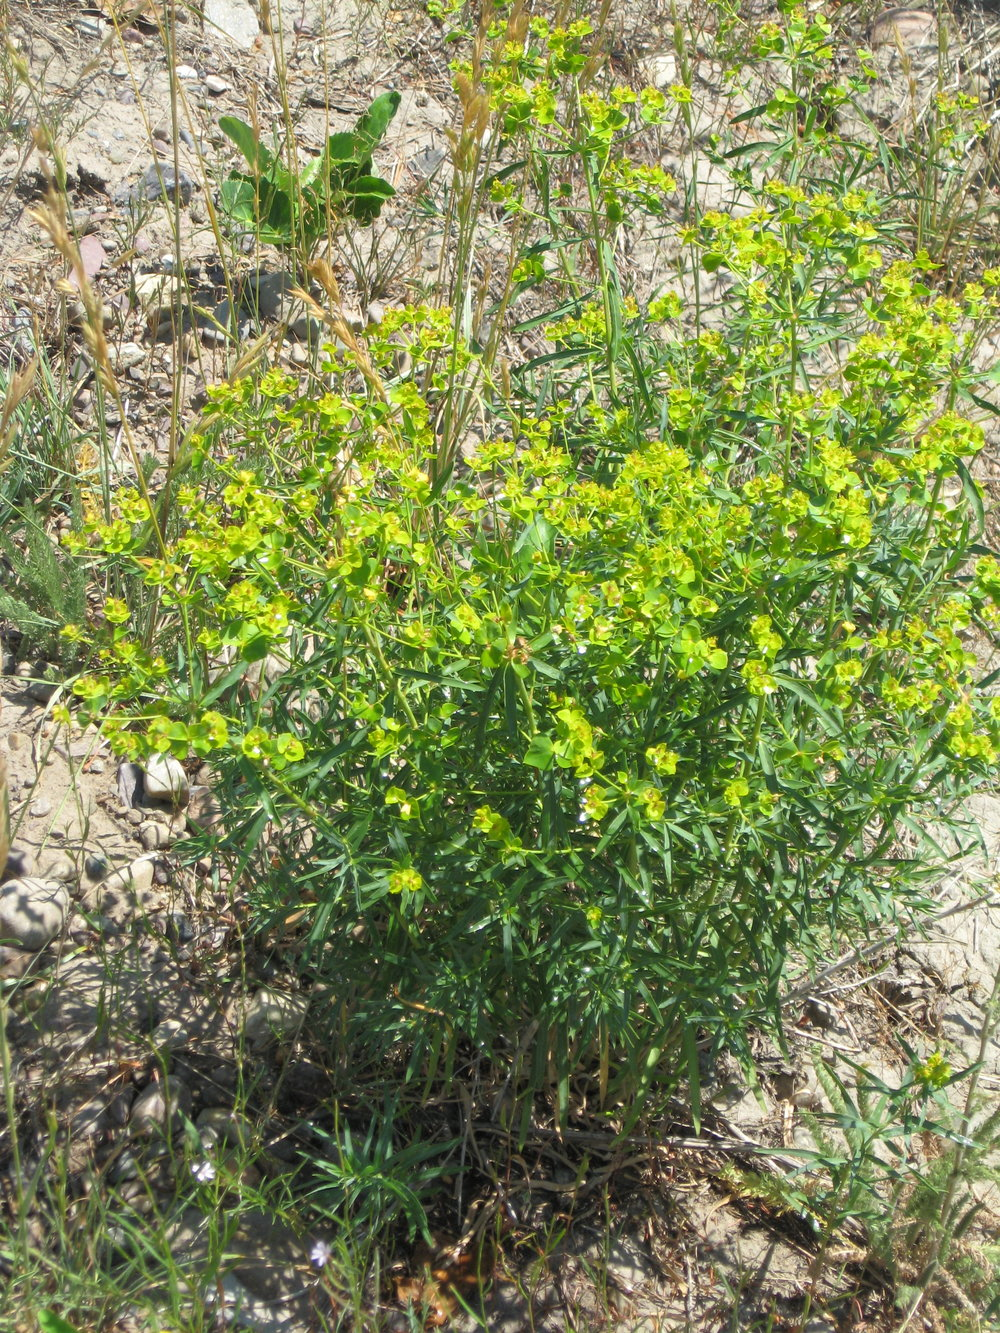 Leafy spurge that was identified and controlled with private landowner support